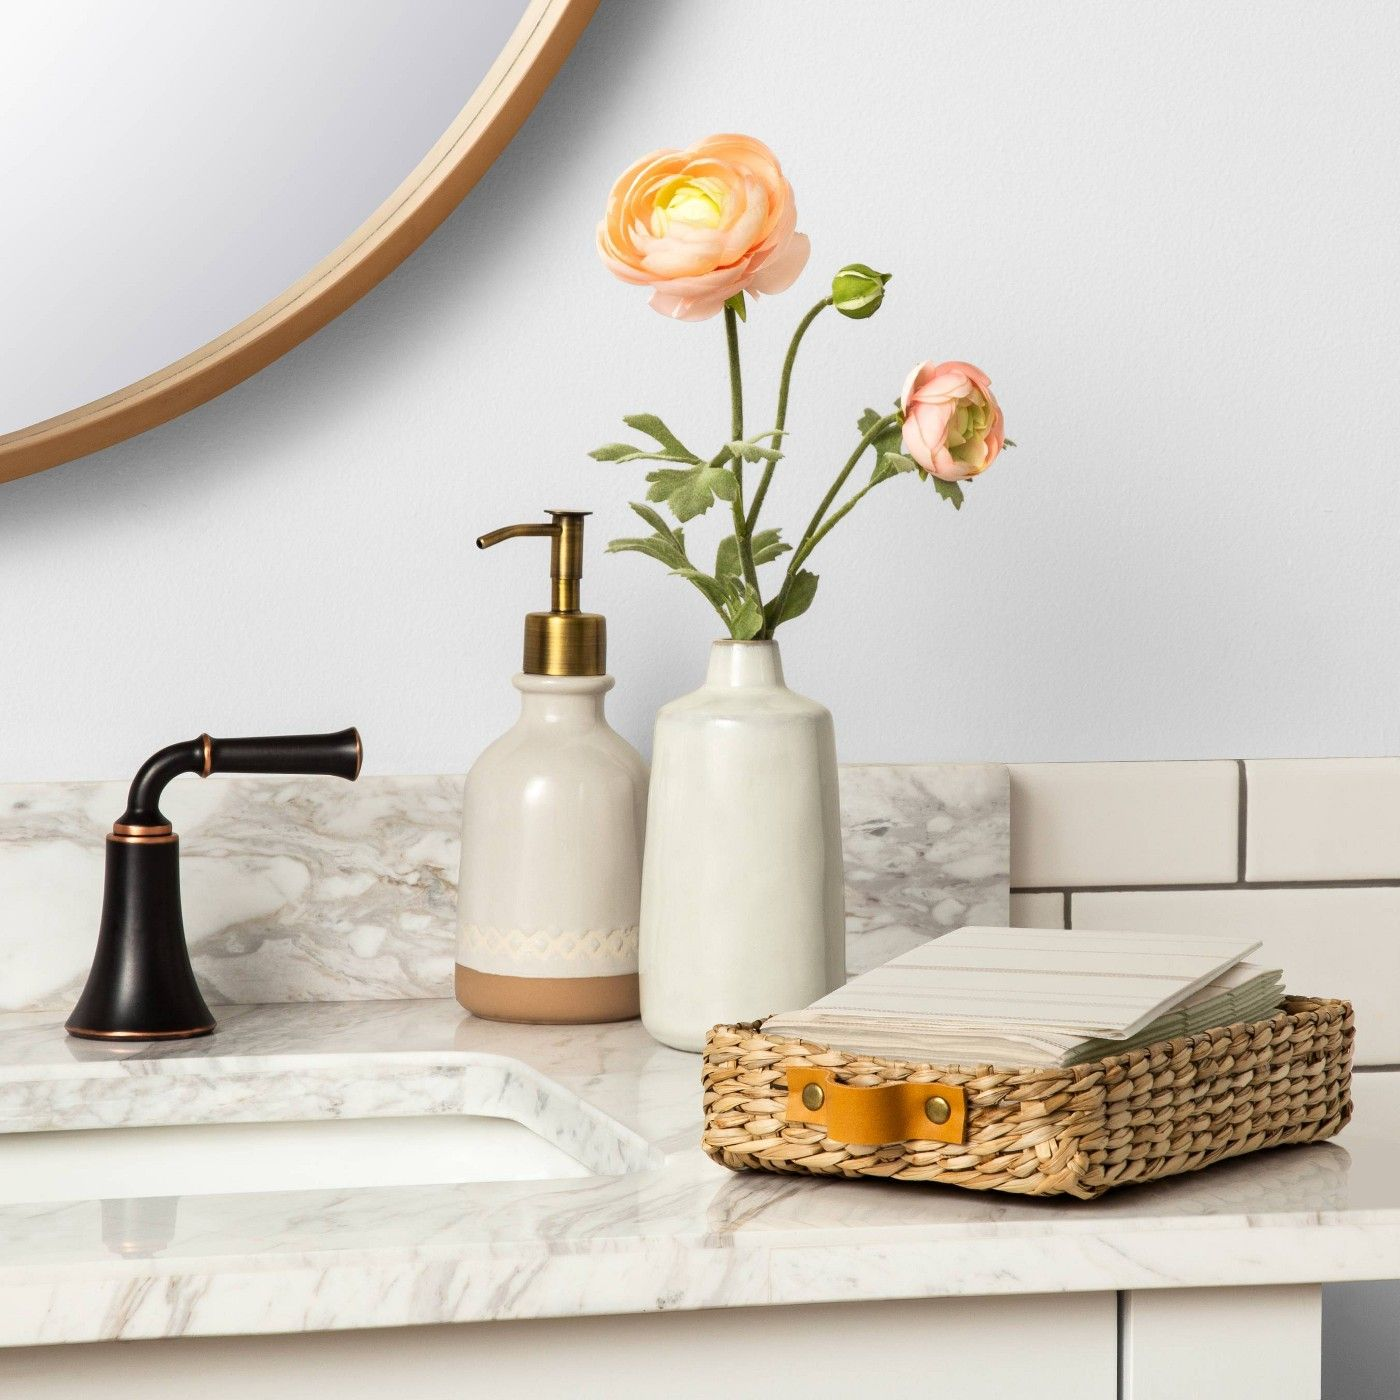 Disposable Hand Towel Holder With Leather Handles Hearth Hand With Magnolia Sponsore Hand Towel Holder Disposable Hand Towels Hearth Hand With Magnolia Bathroom hand towel holder